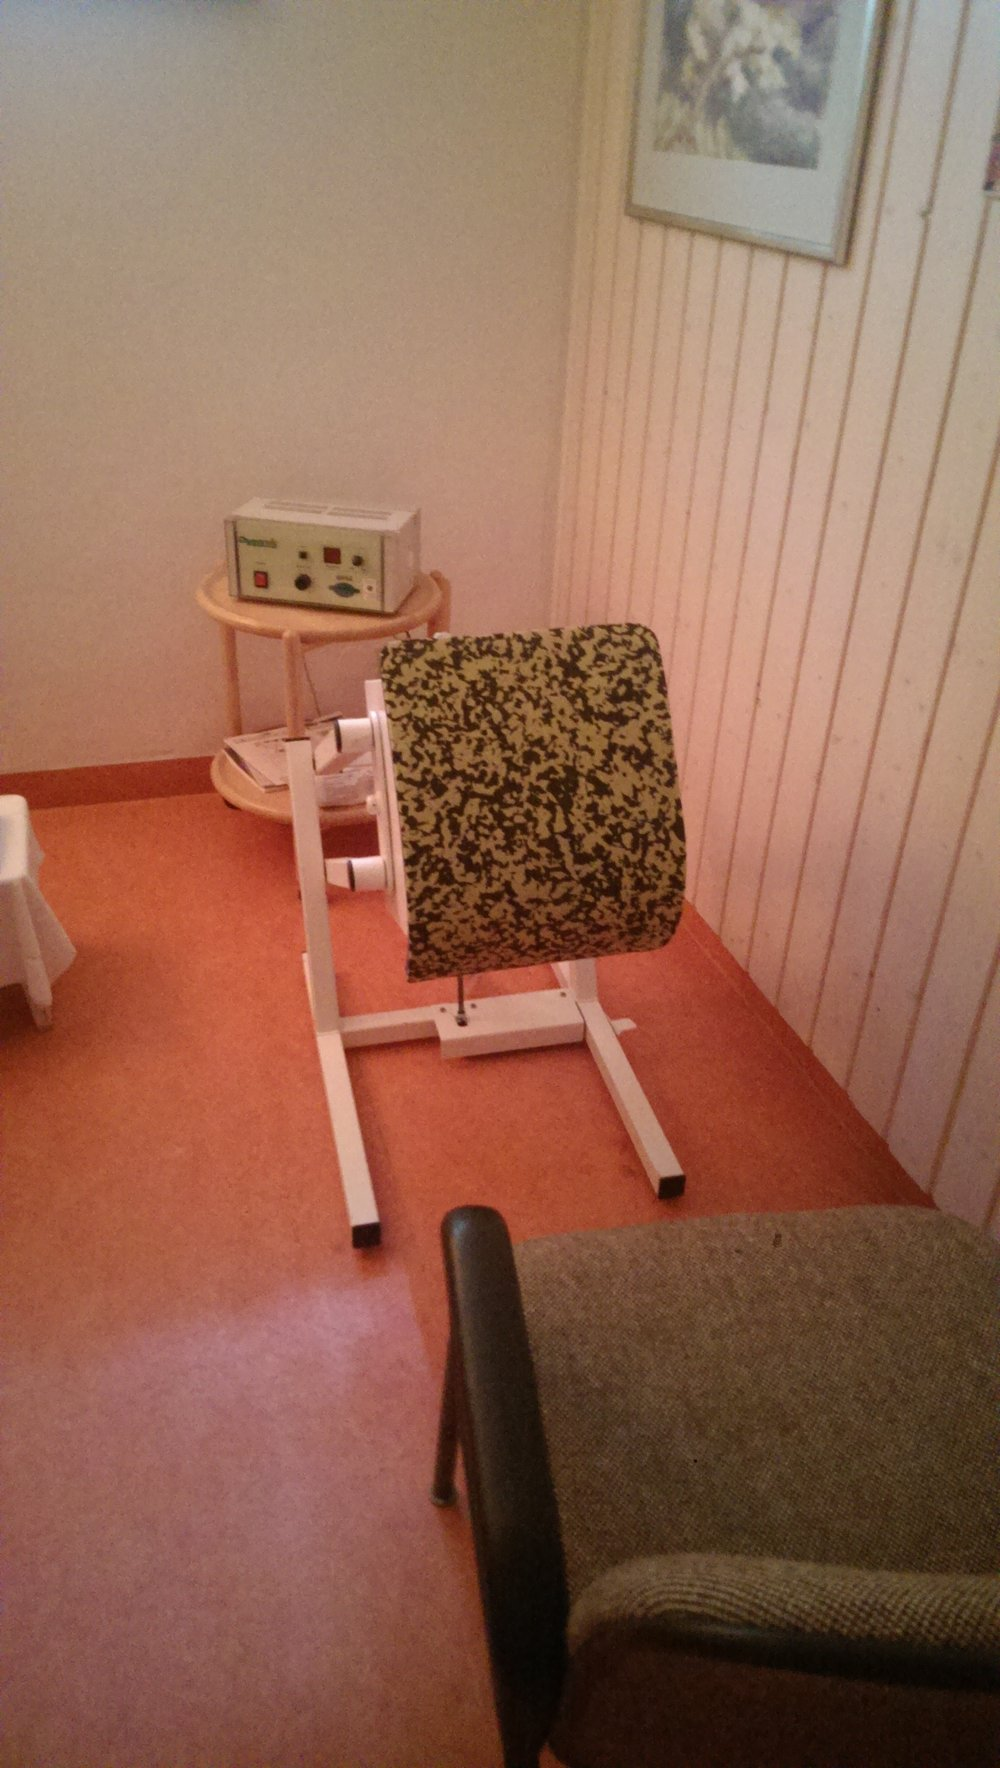 Peripheral Neuropathy Vibration Therapy Machine